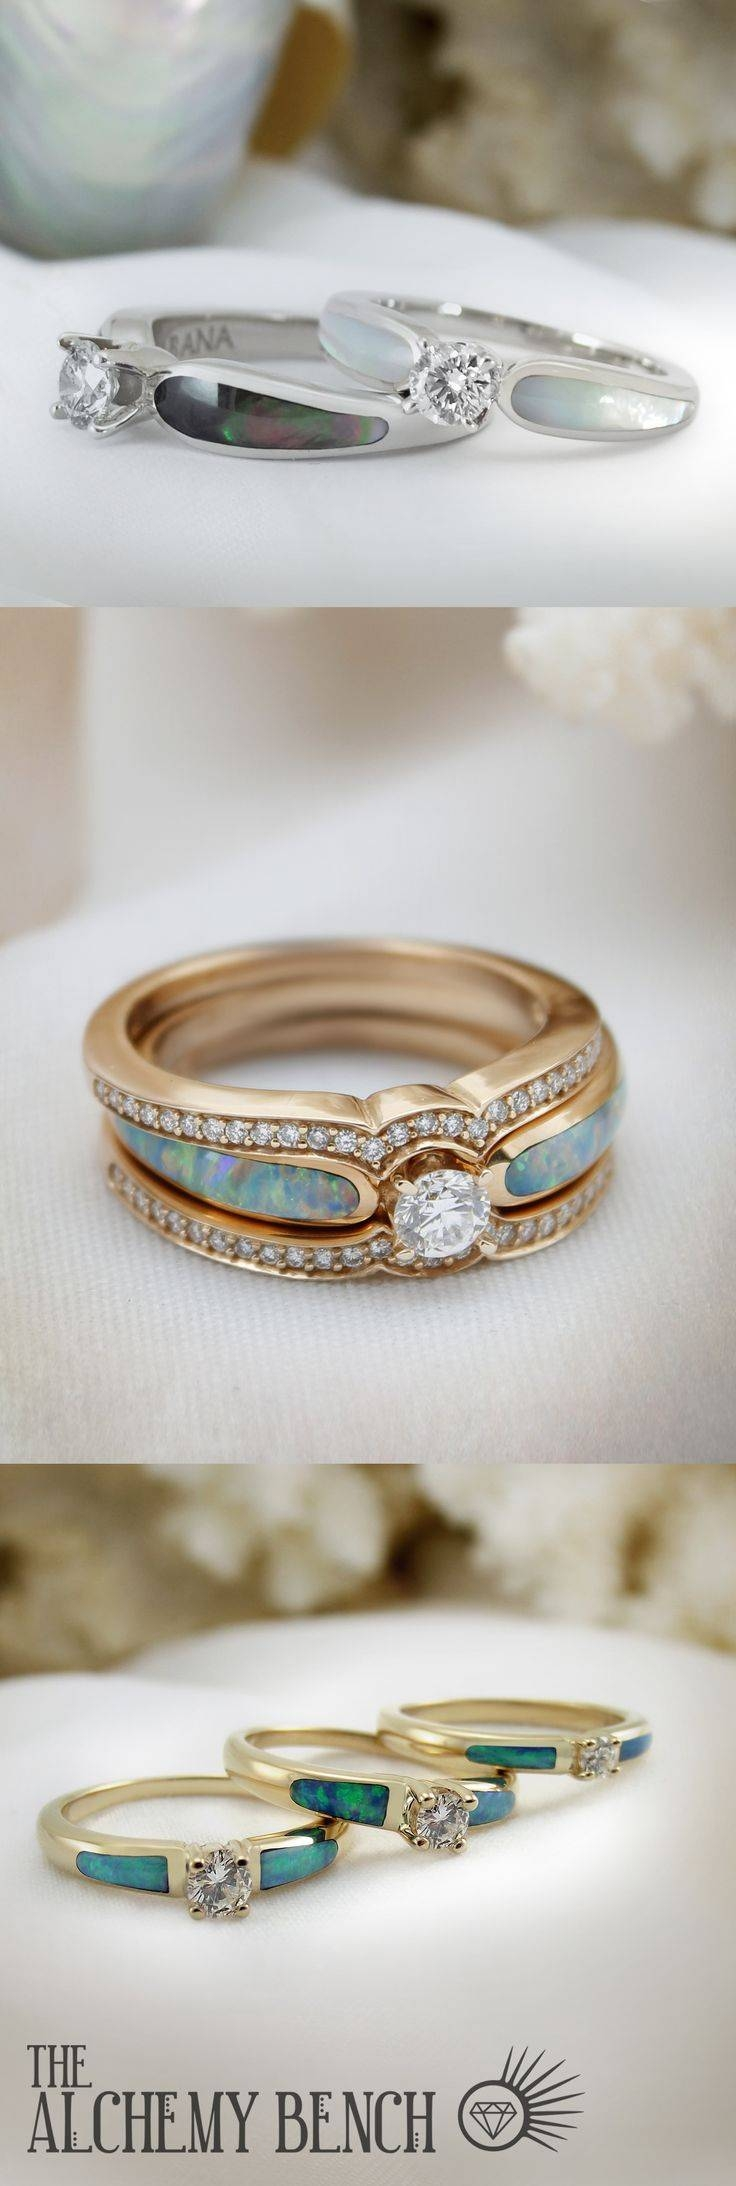 99 Best Unique Wedding Rings Images On Pinterest | Unique Weddings In Current Horizon Wedding Bands (View 1 of 15)